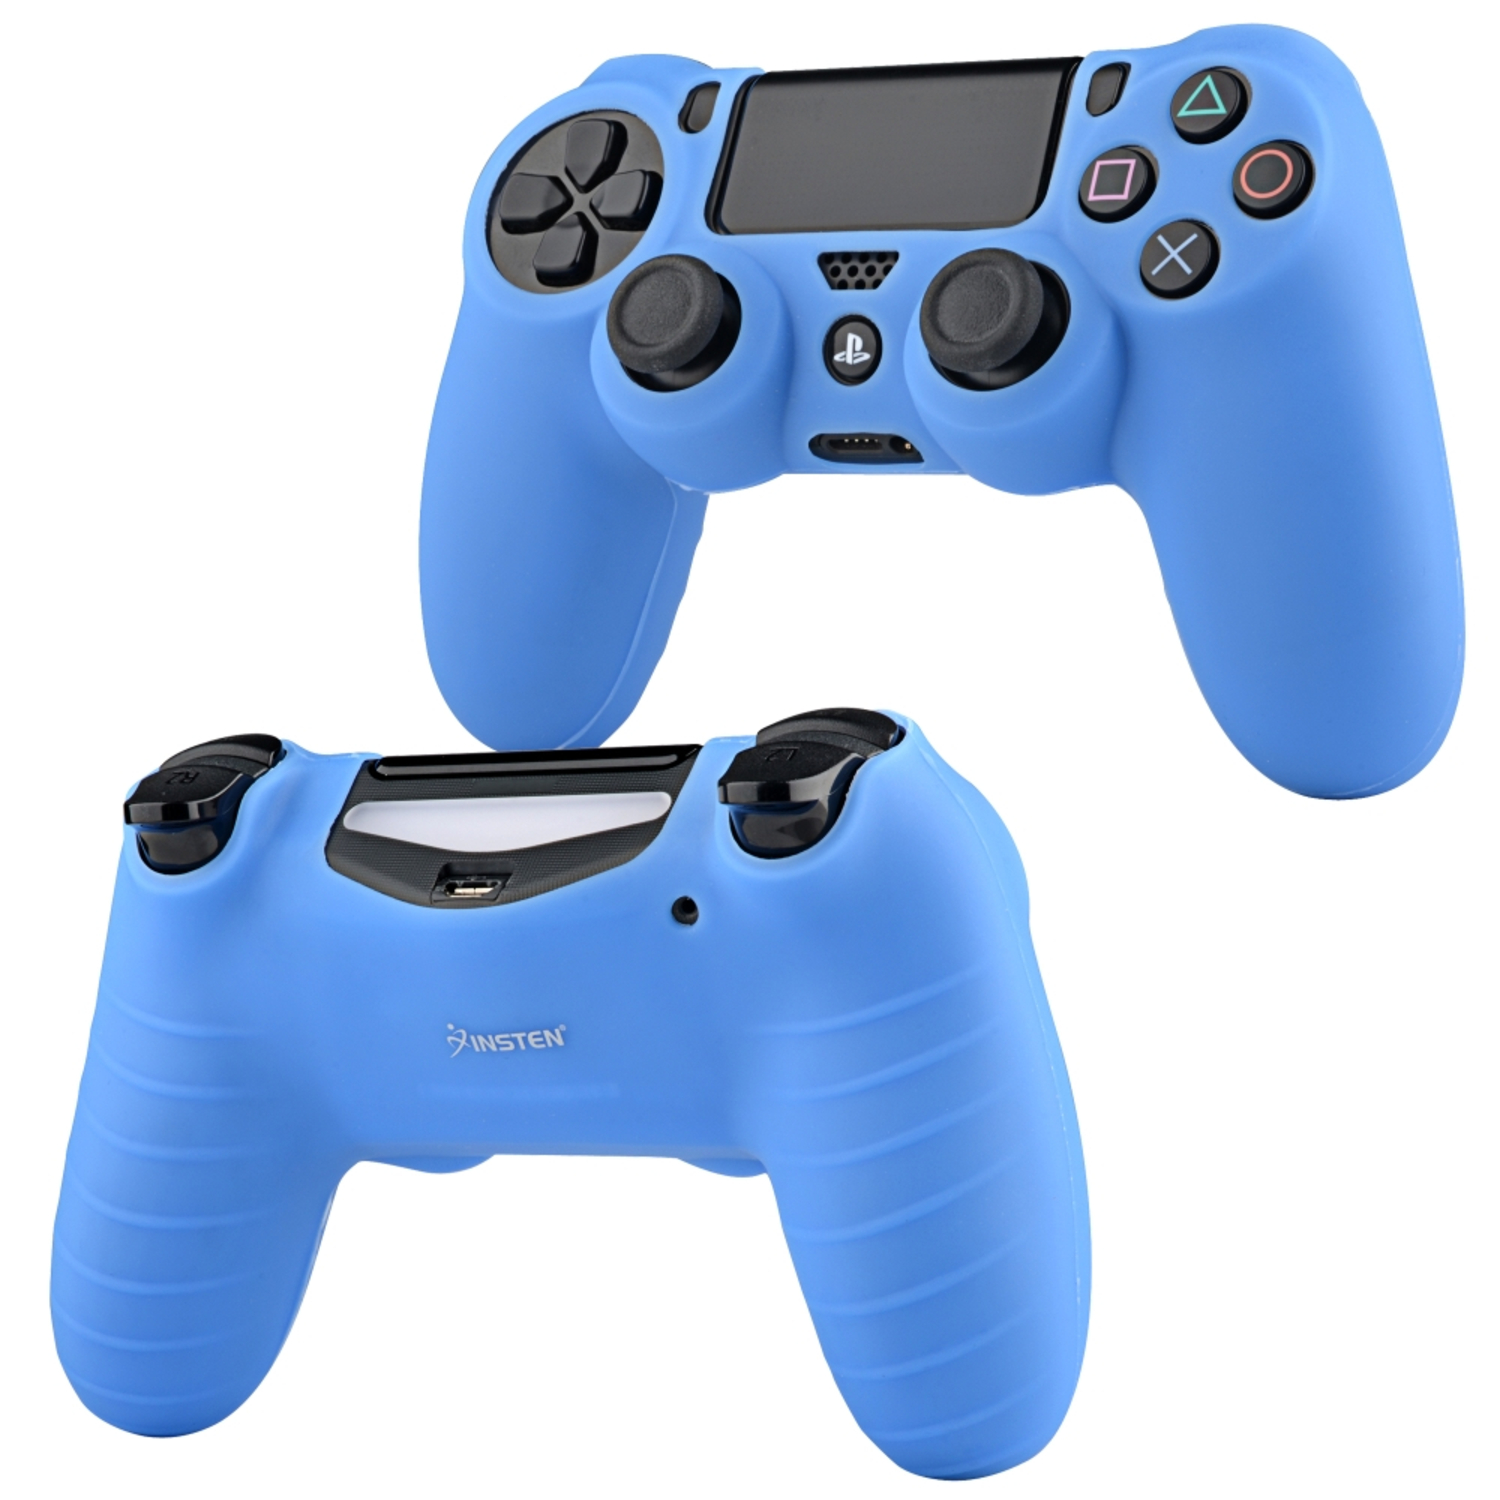 Insten Blue Silicone Skin Case For Sony PS4 Remote Controller